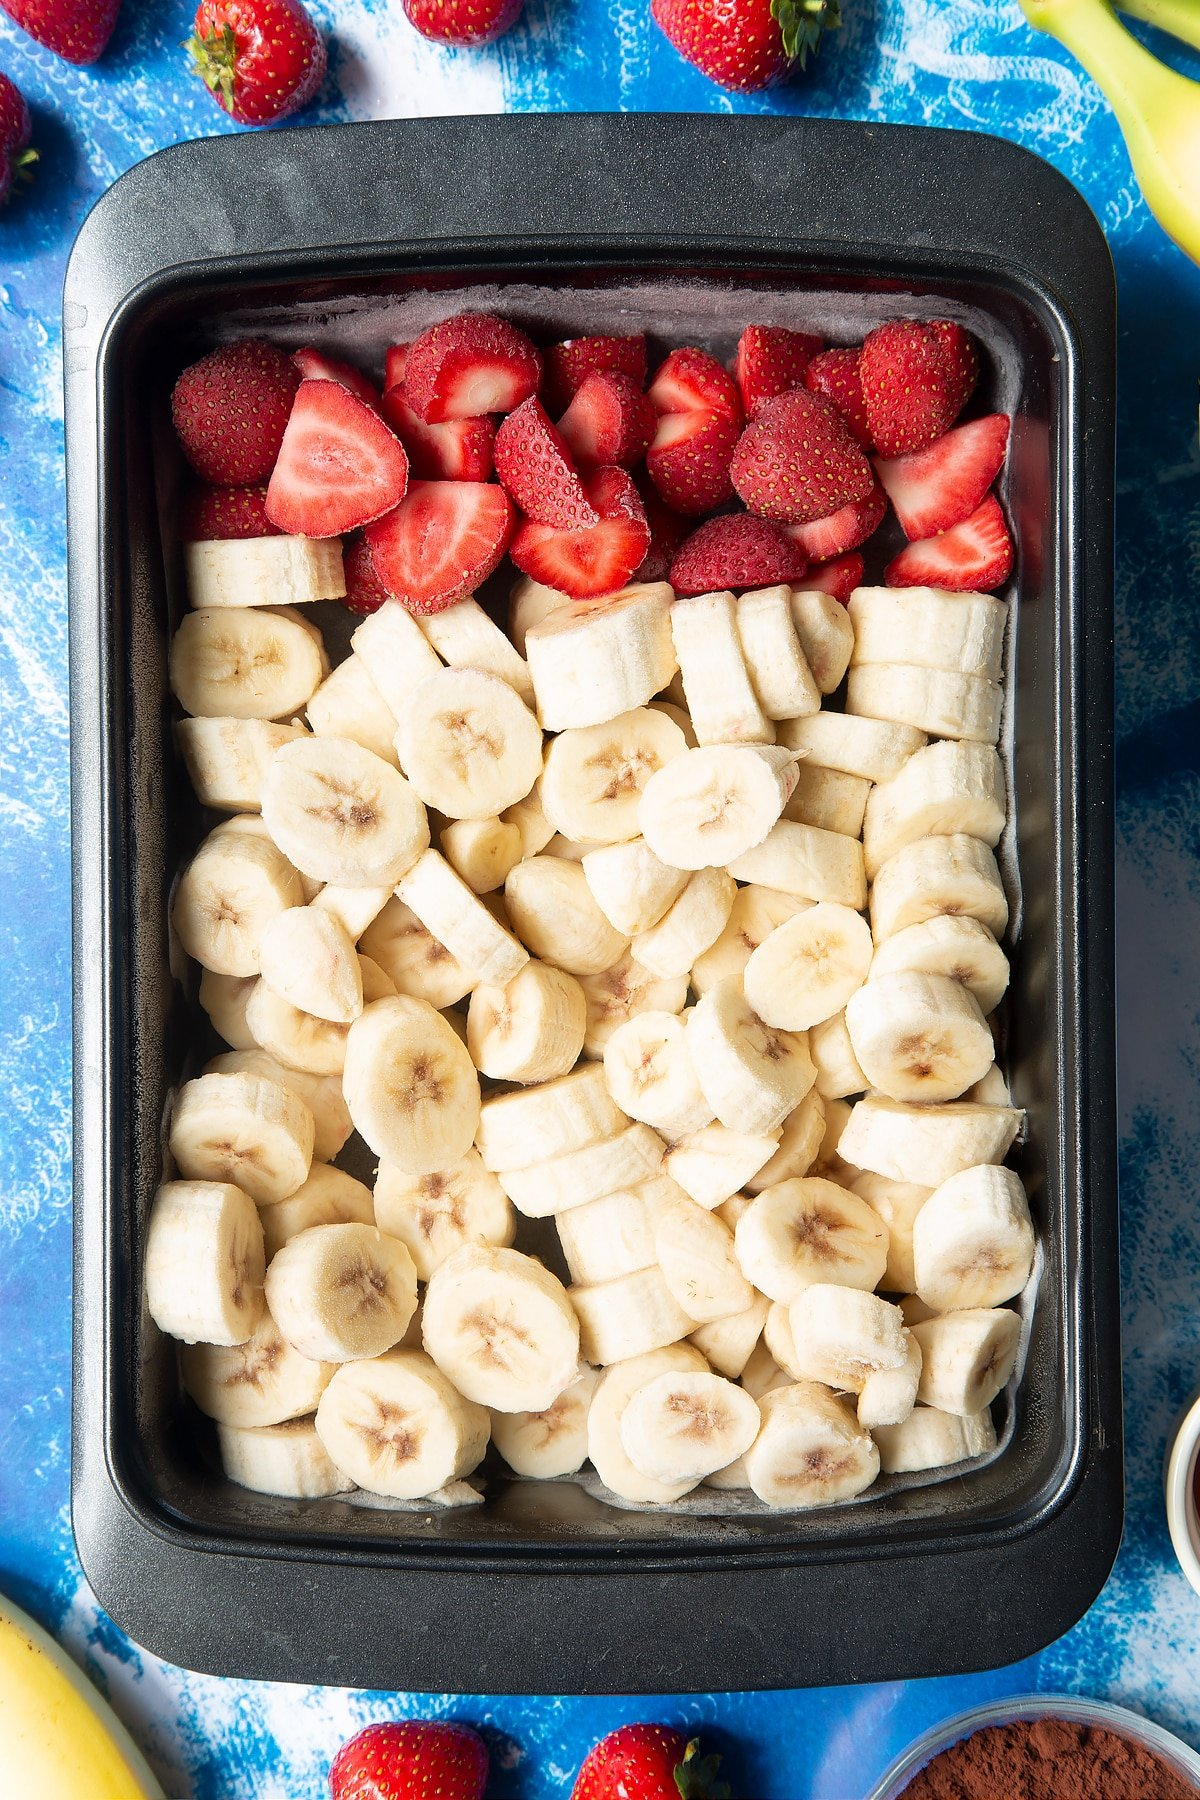 Frozen sliced bananas and strawberries in a tray.